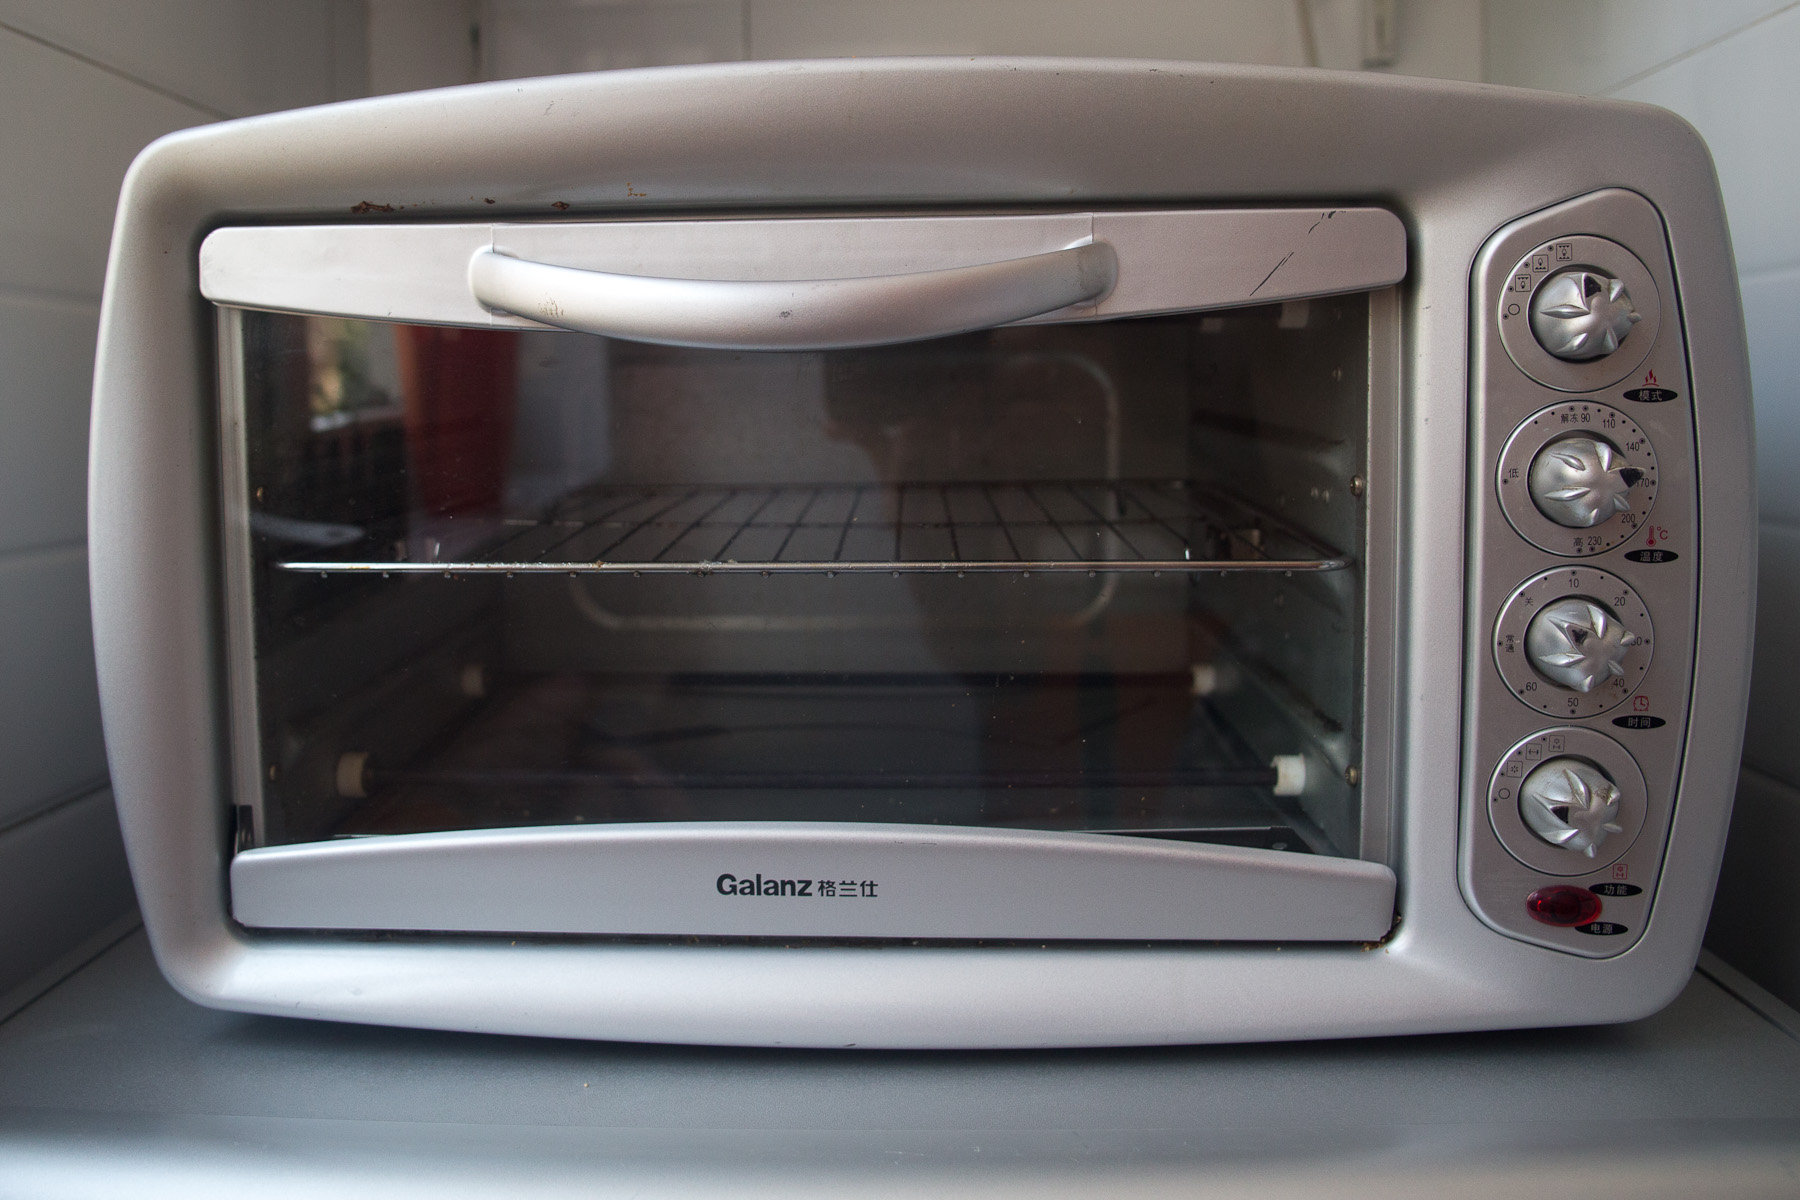 Galanz oven/grill